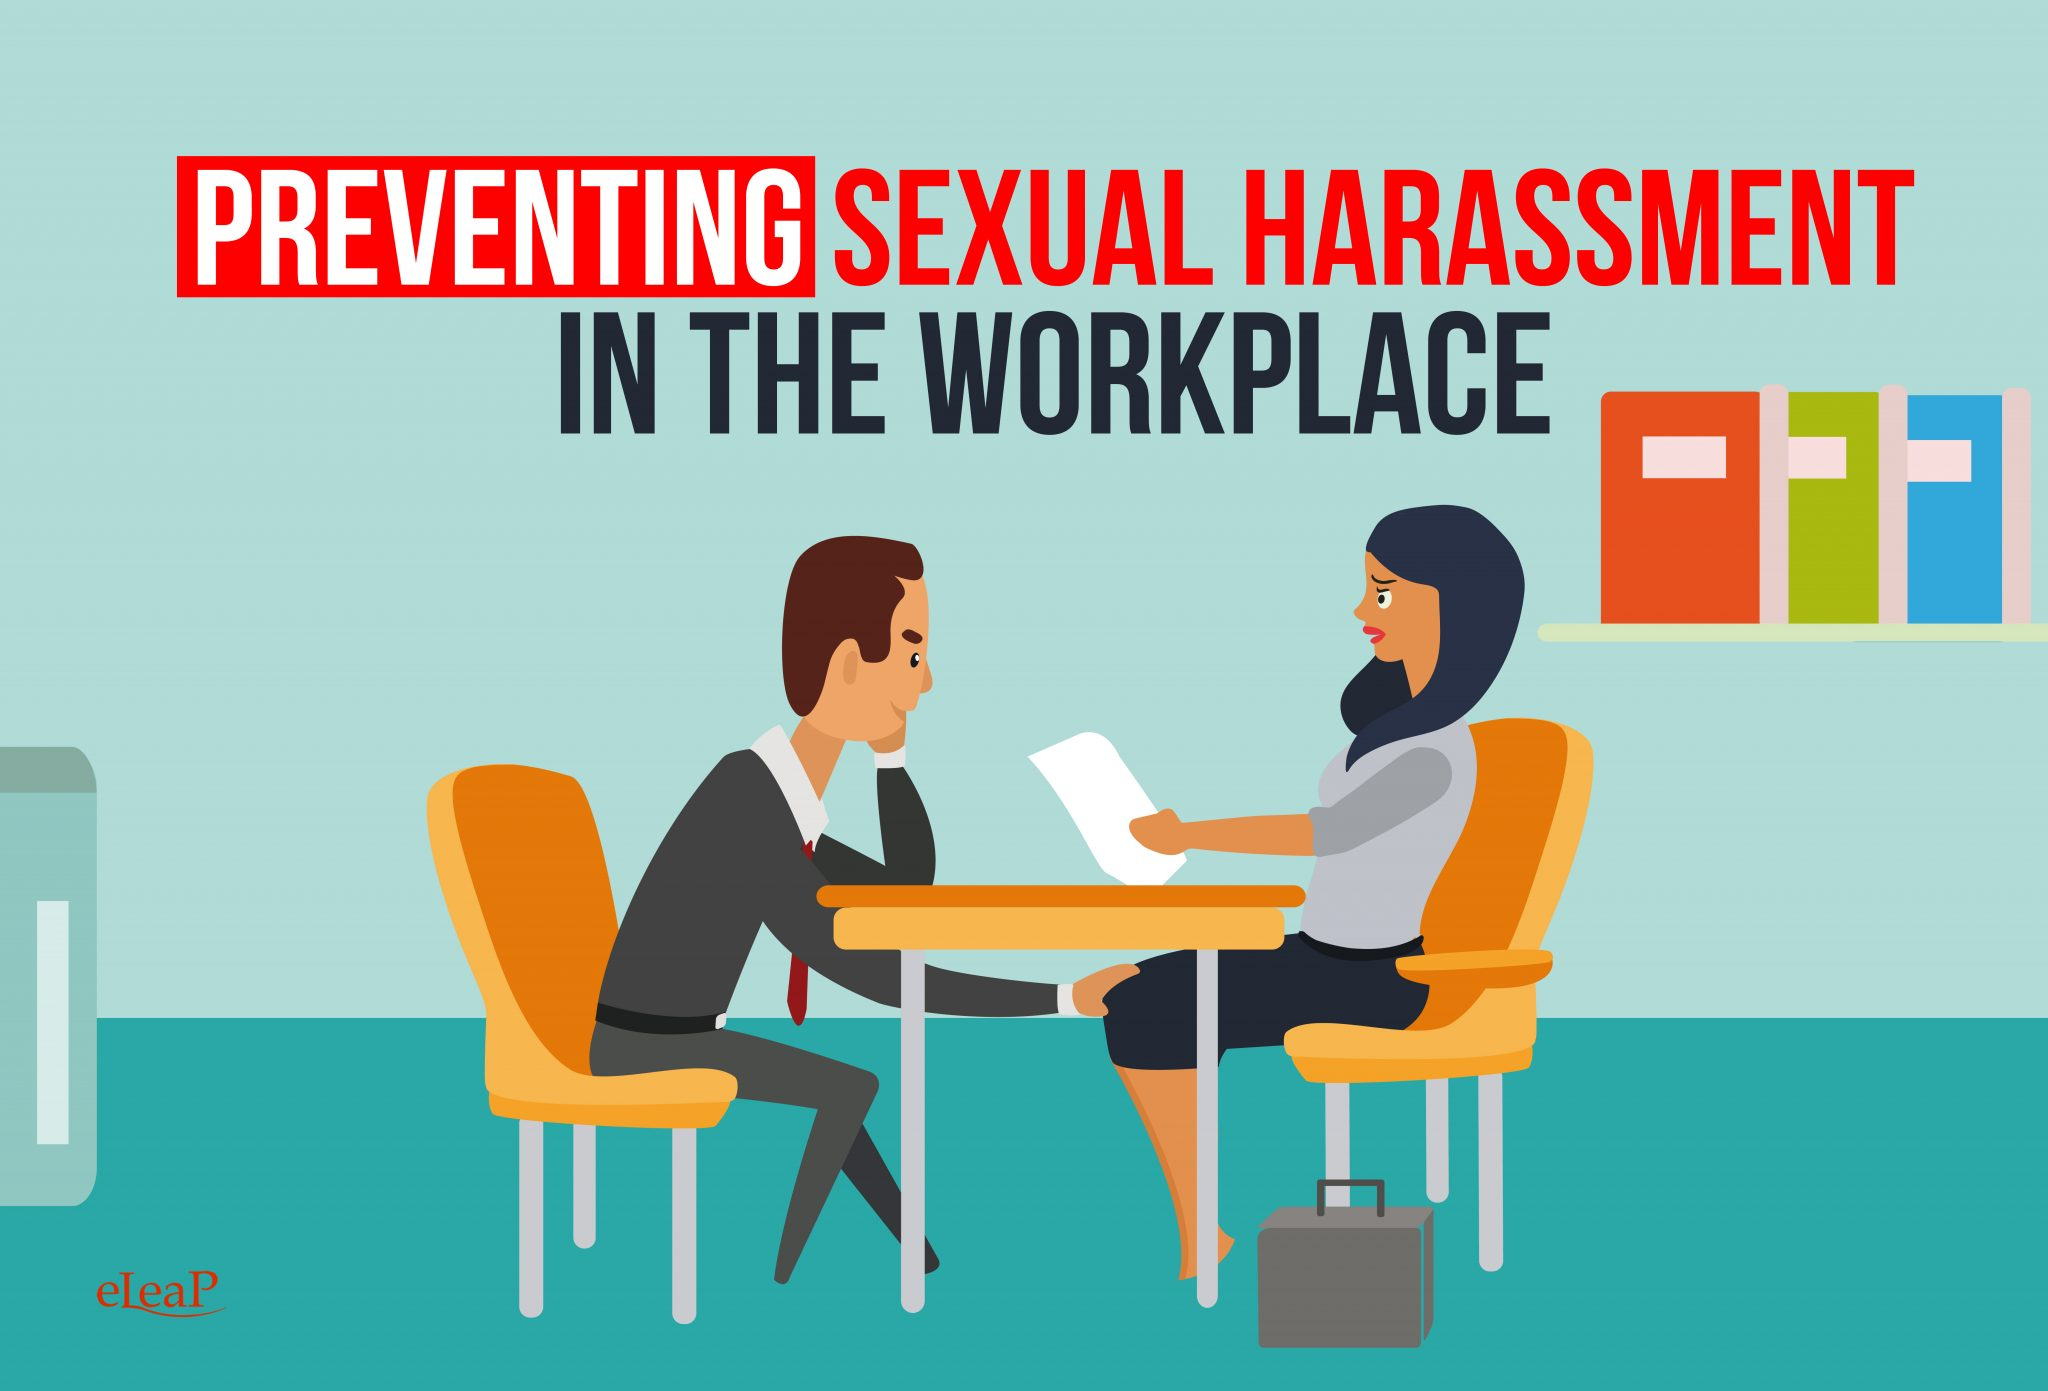 Ending sexual harassment